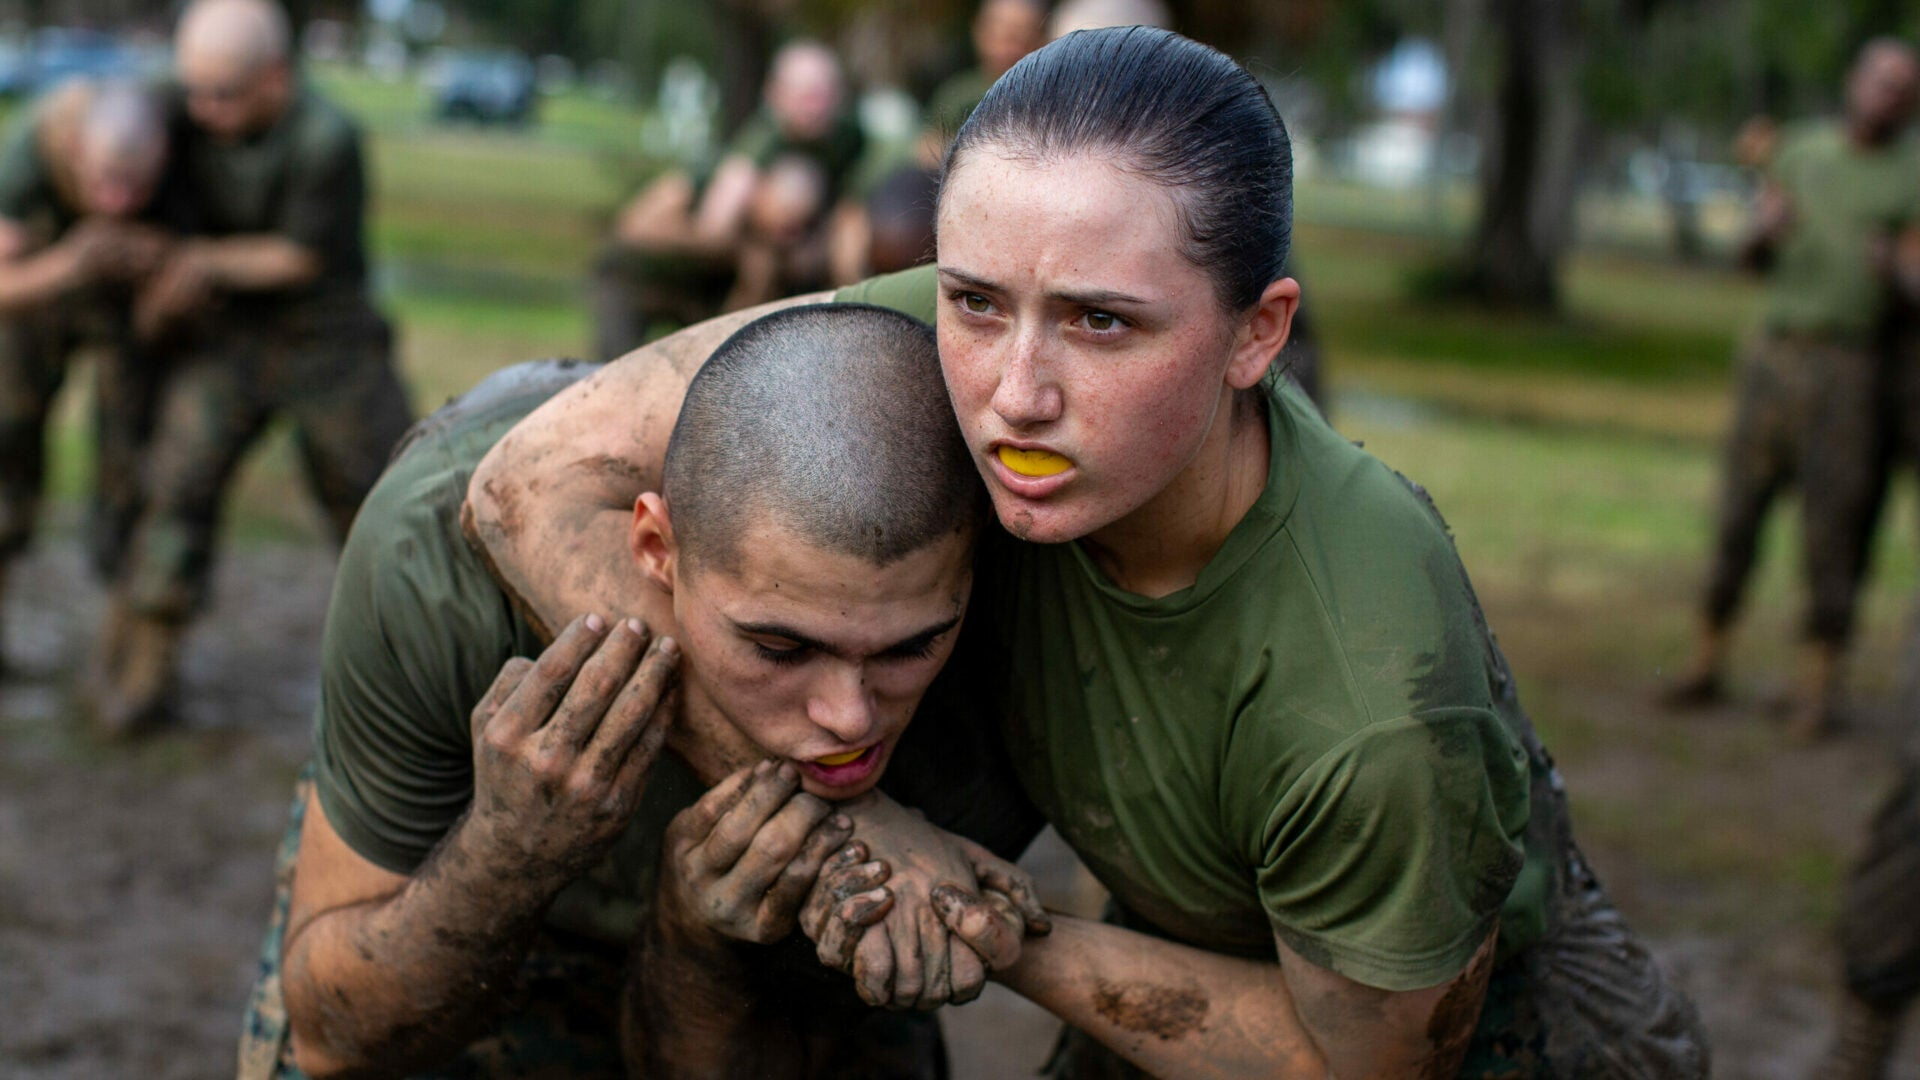 Female Marine recruits will train at Recruit Depot San Diego for the first time ever starting next year